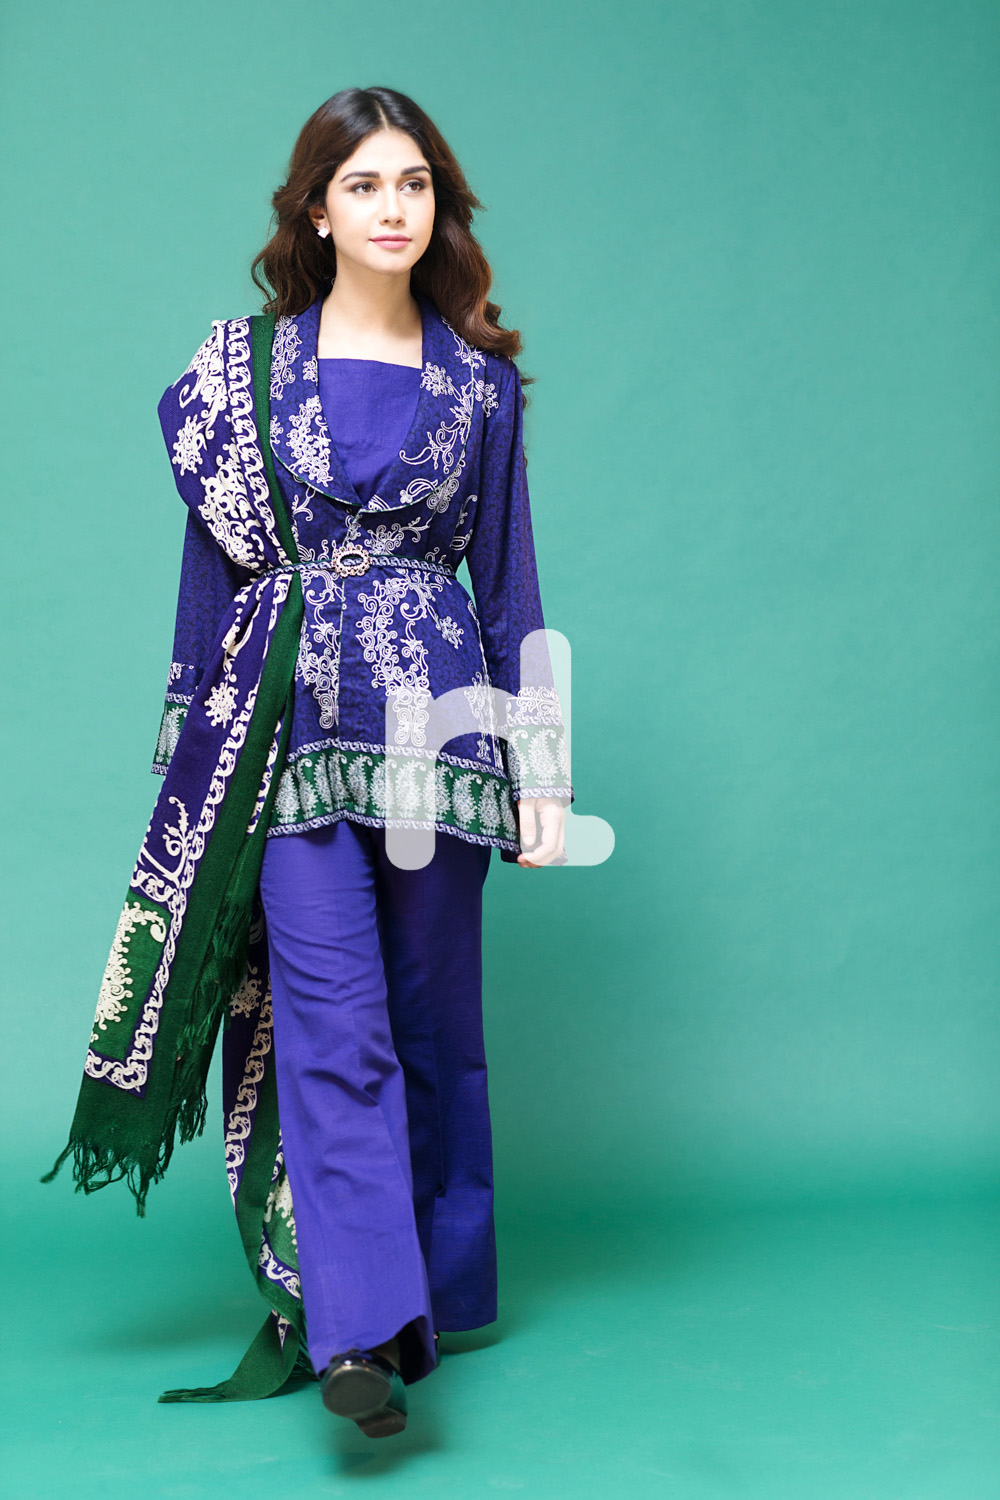 Latest Pakistani Fashion 2019-20: Medium Shirts With